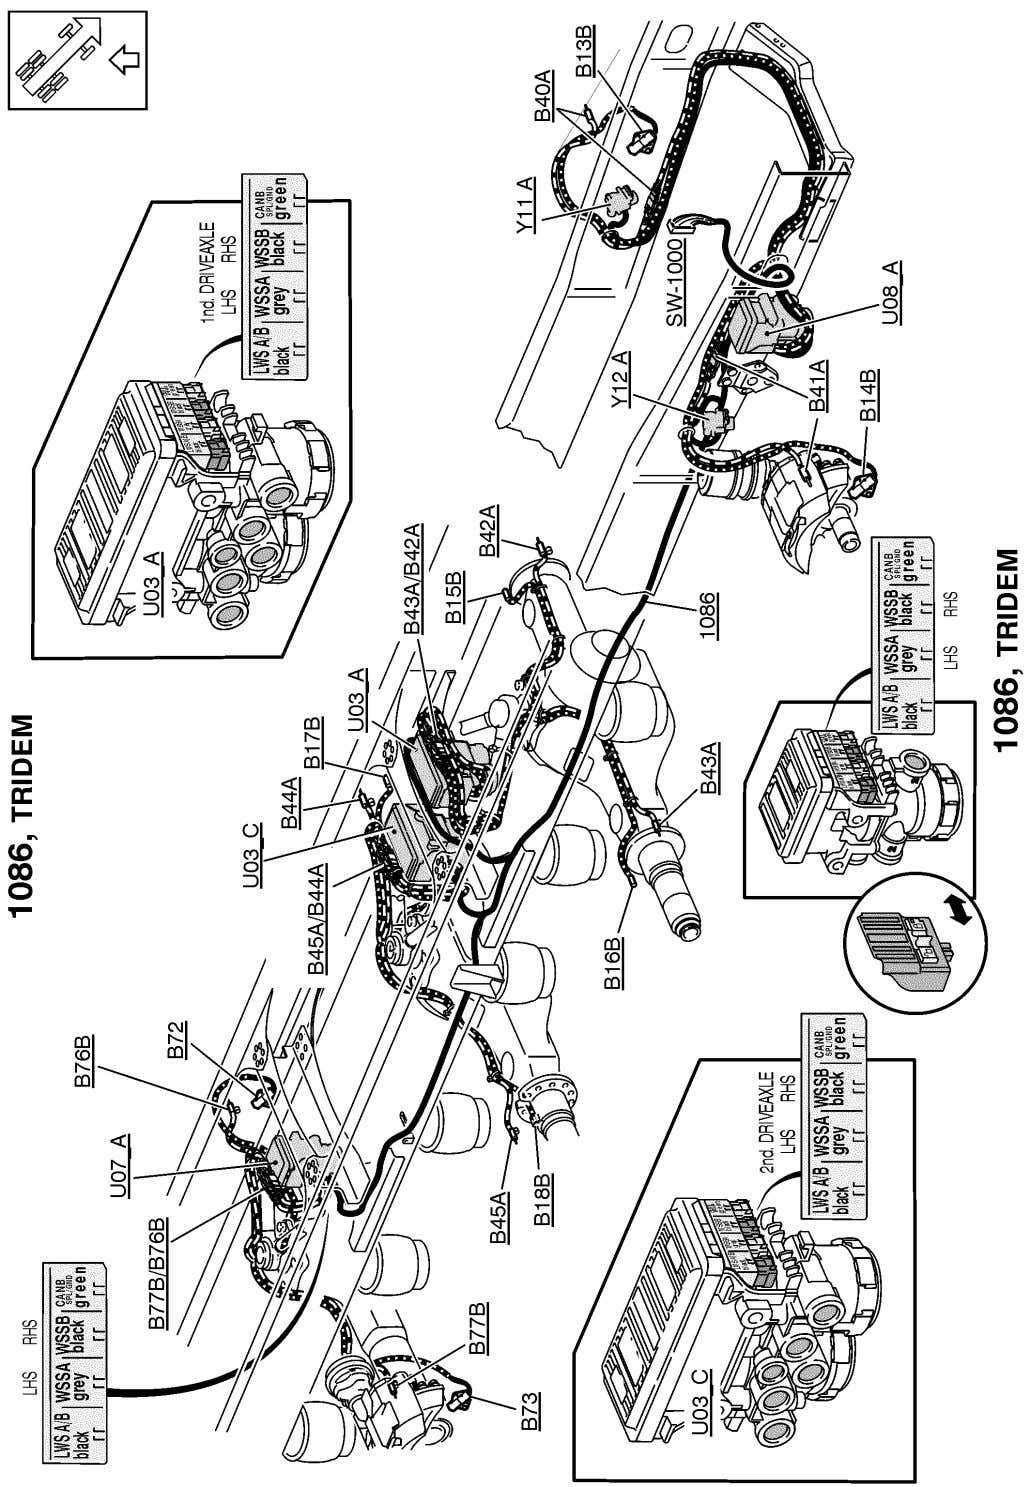 T3059948 Wiring diagram Page 193 (298)